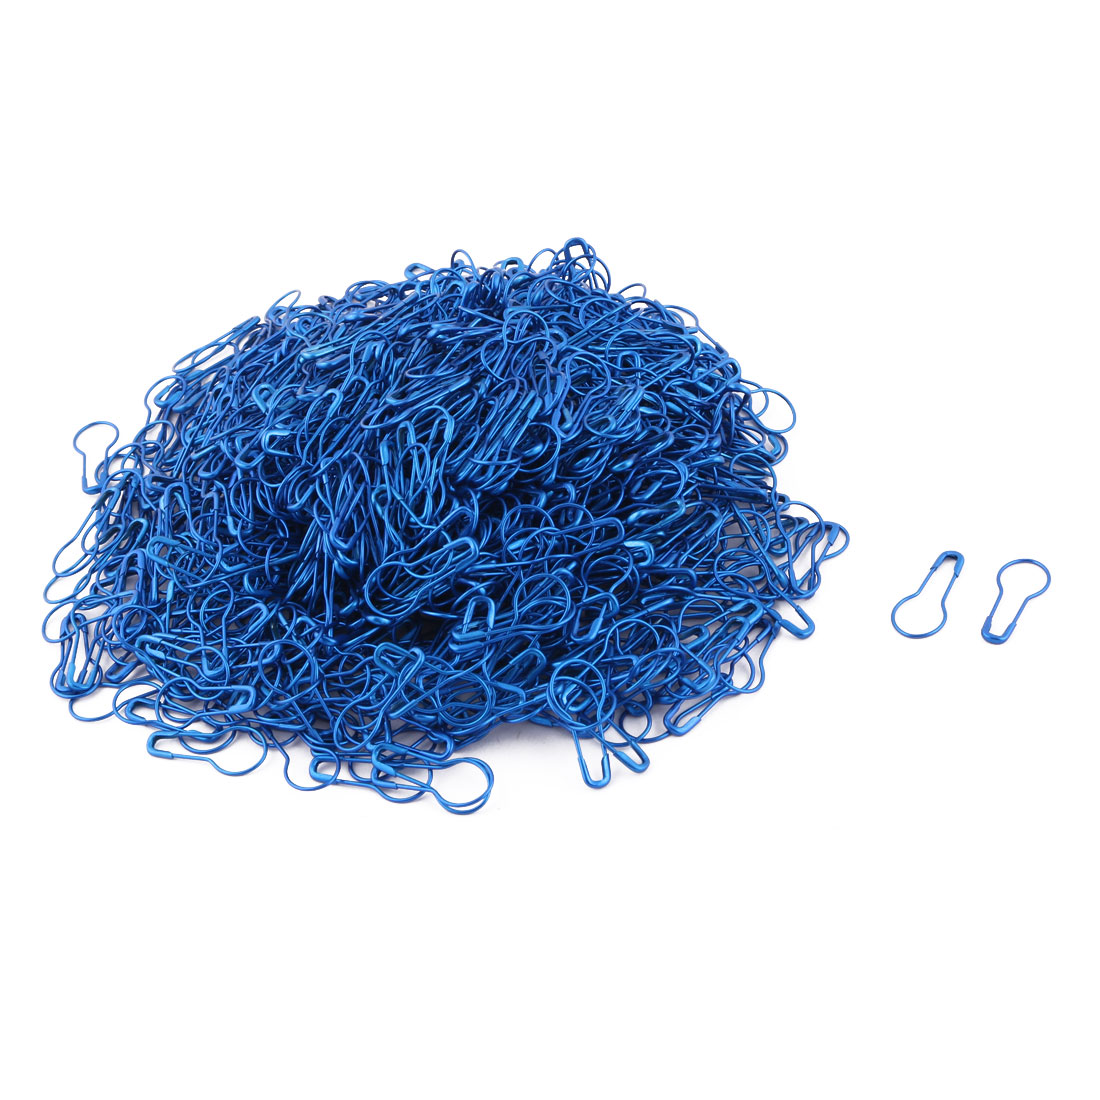 Home Fastening Blankets Skirt Safety Pins Brooches Blue 2.2cm Length 800 Pcs